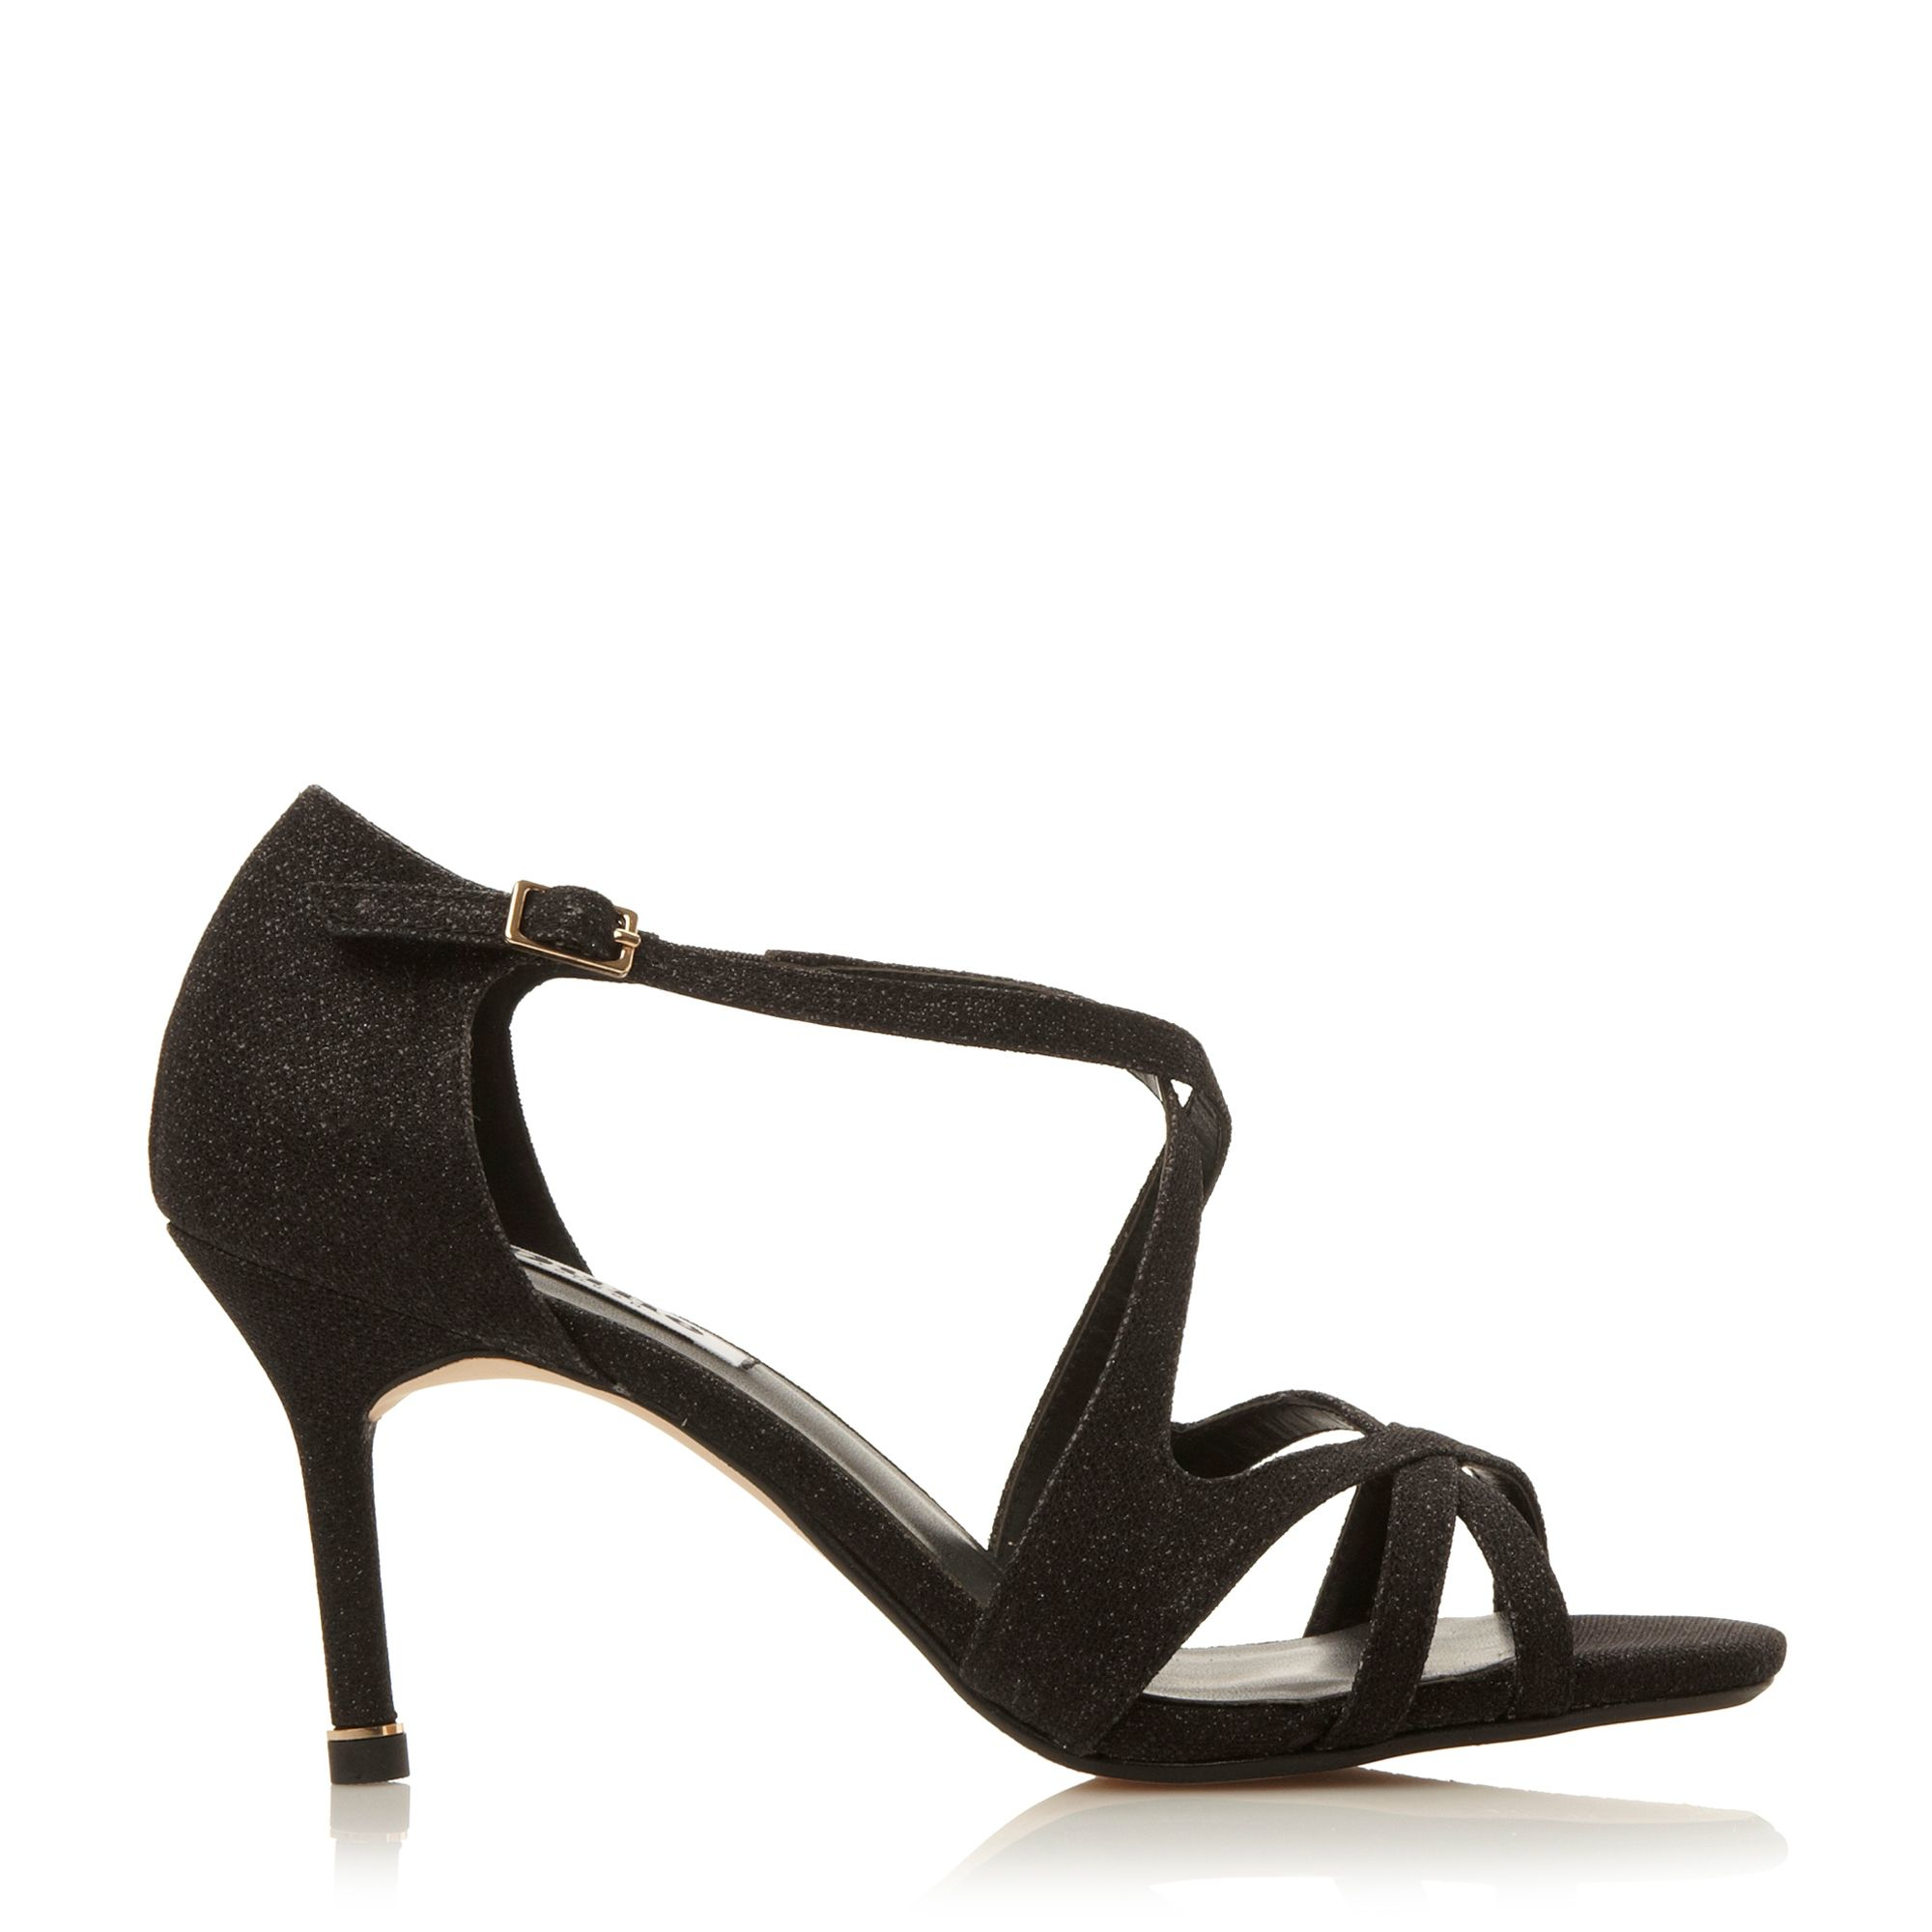 Dune Marilyn Strappy Mid Heel Sandals in Black | Lyst